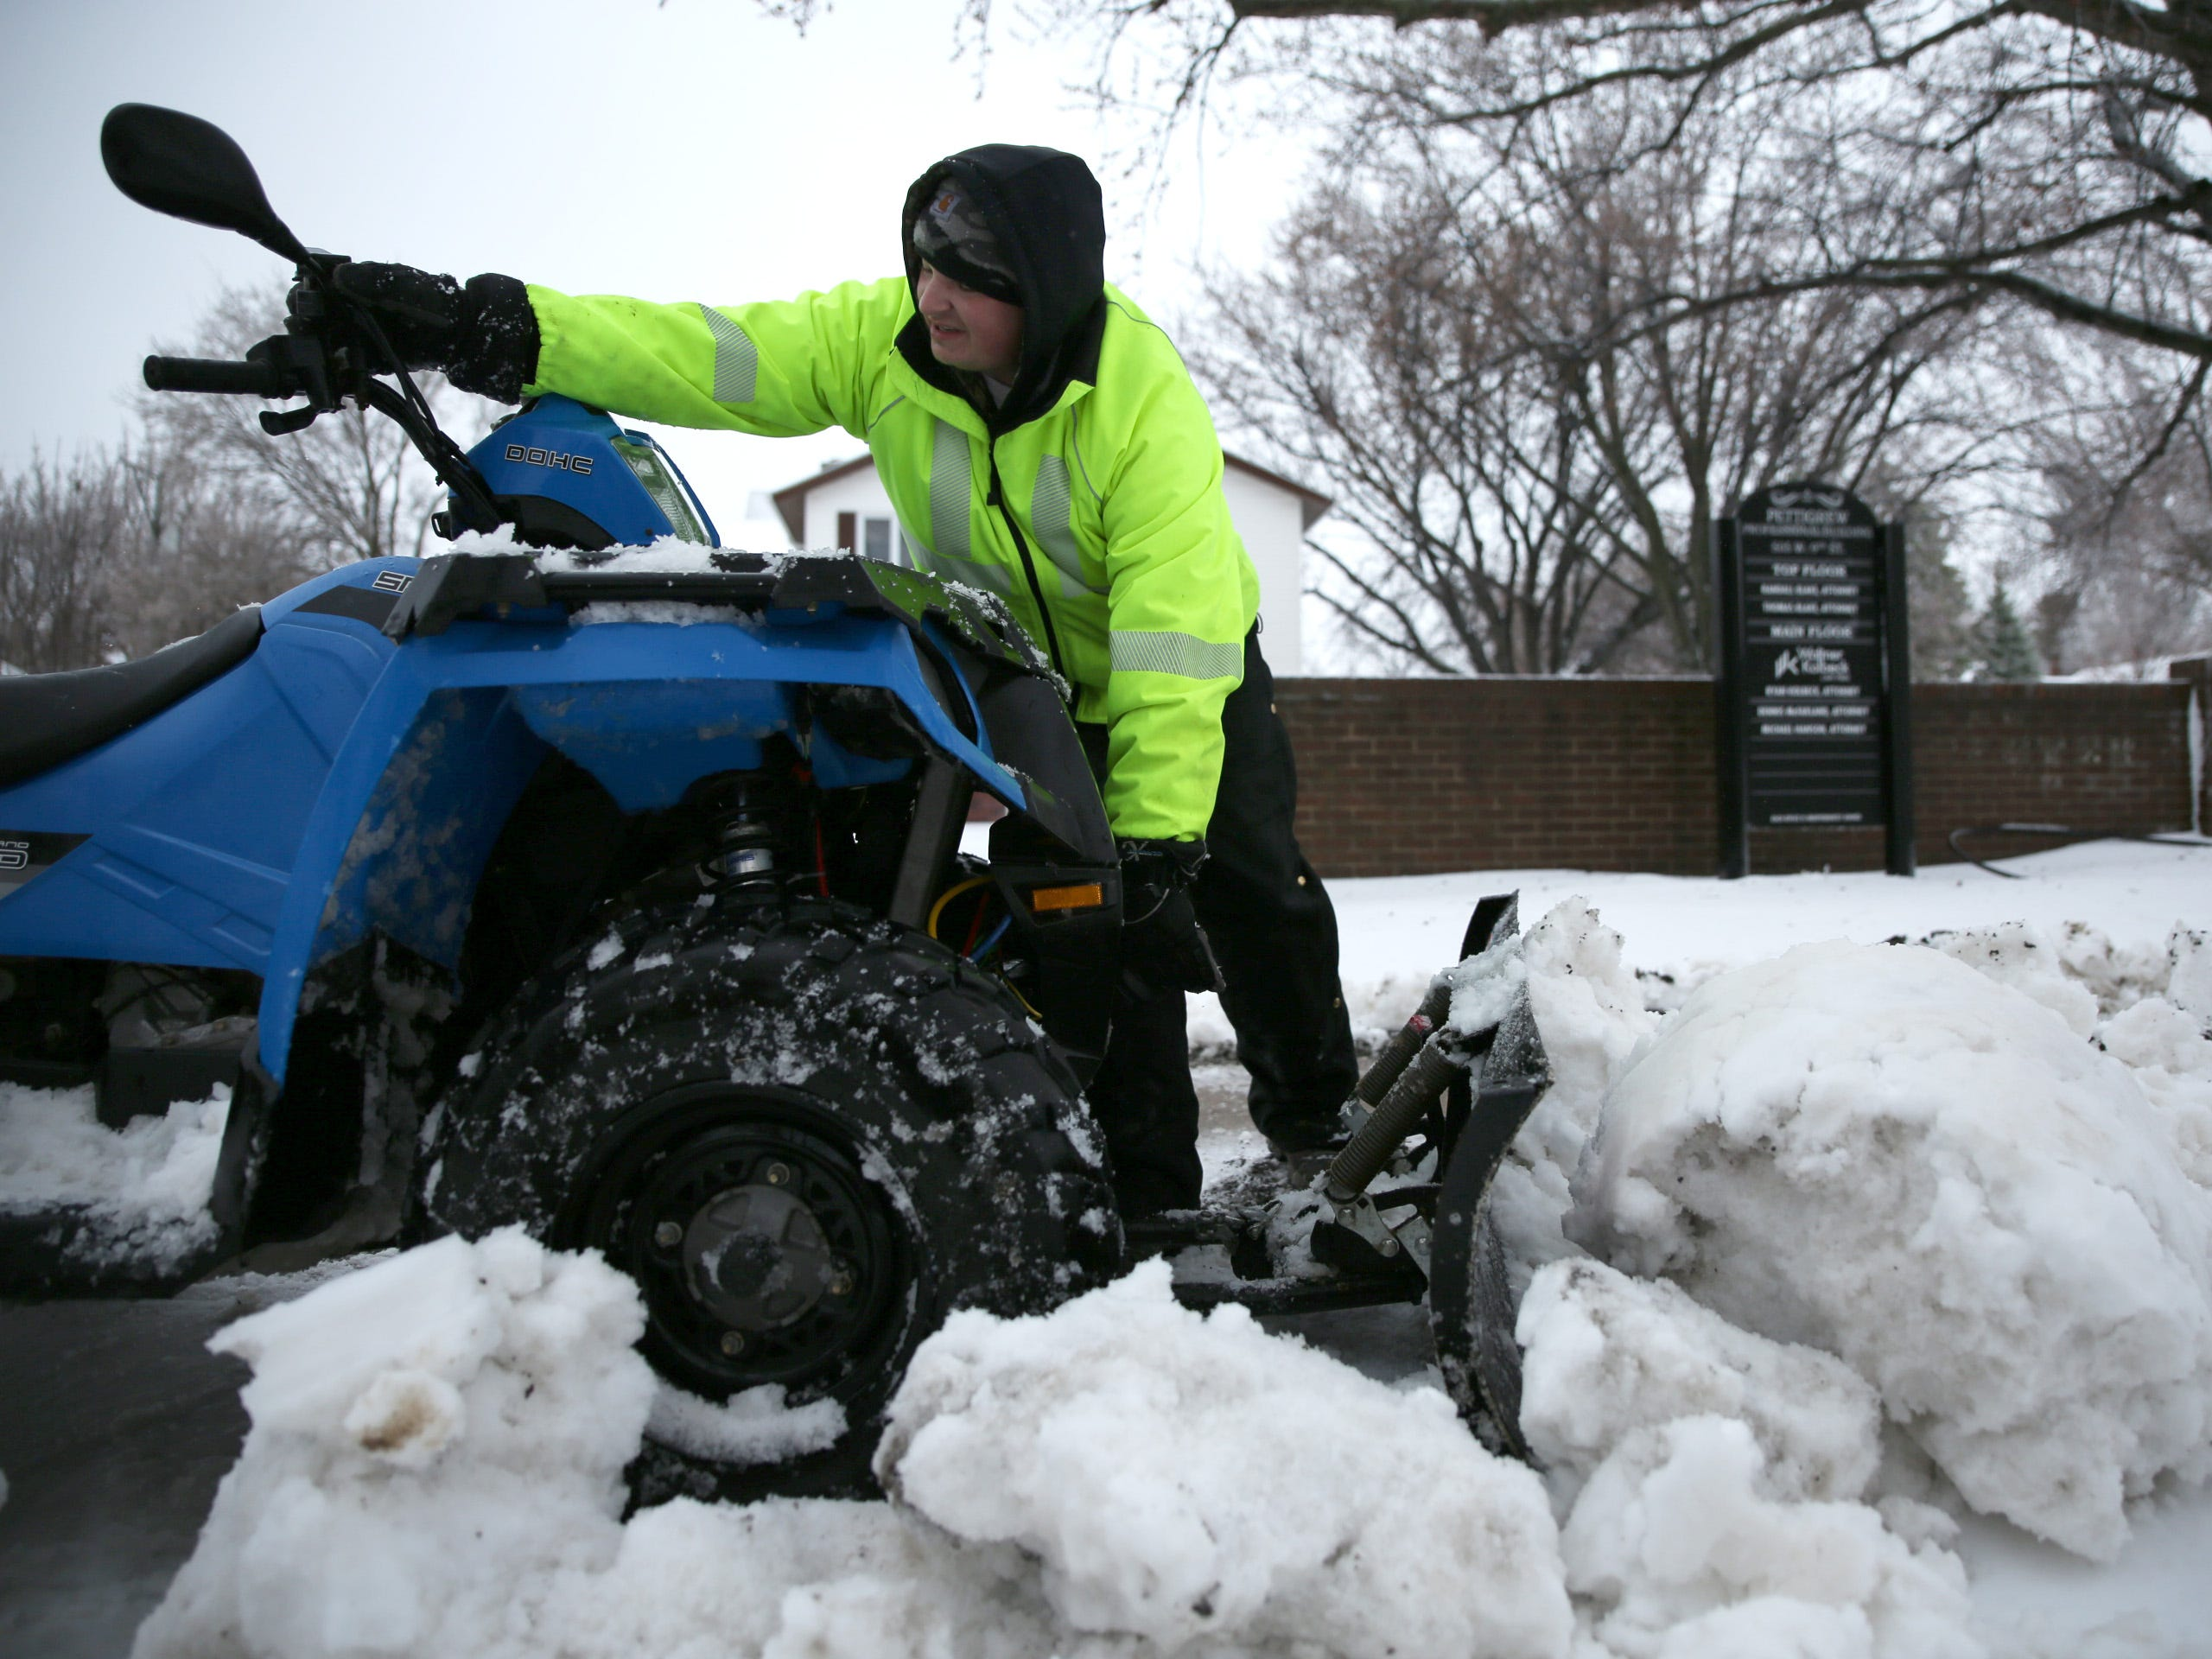 Dan Preston, owner of Mr. Plow, fixes his four-wheeler while plowing snow on a client's property on Spring Avenue Thursday, April 11.